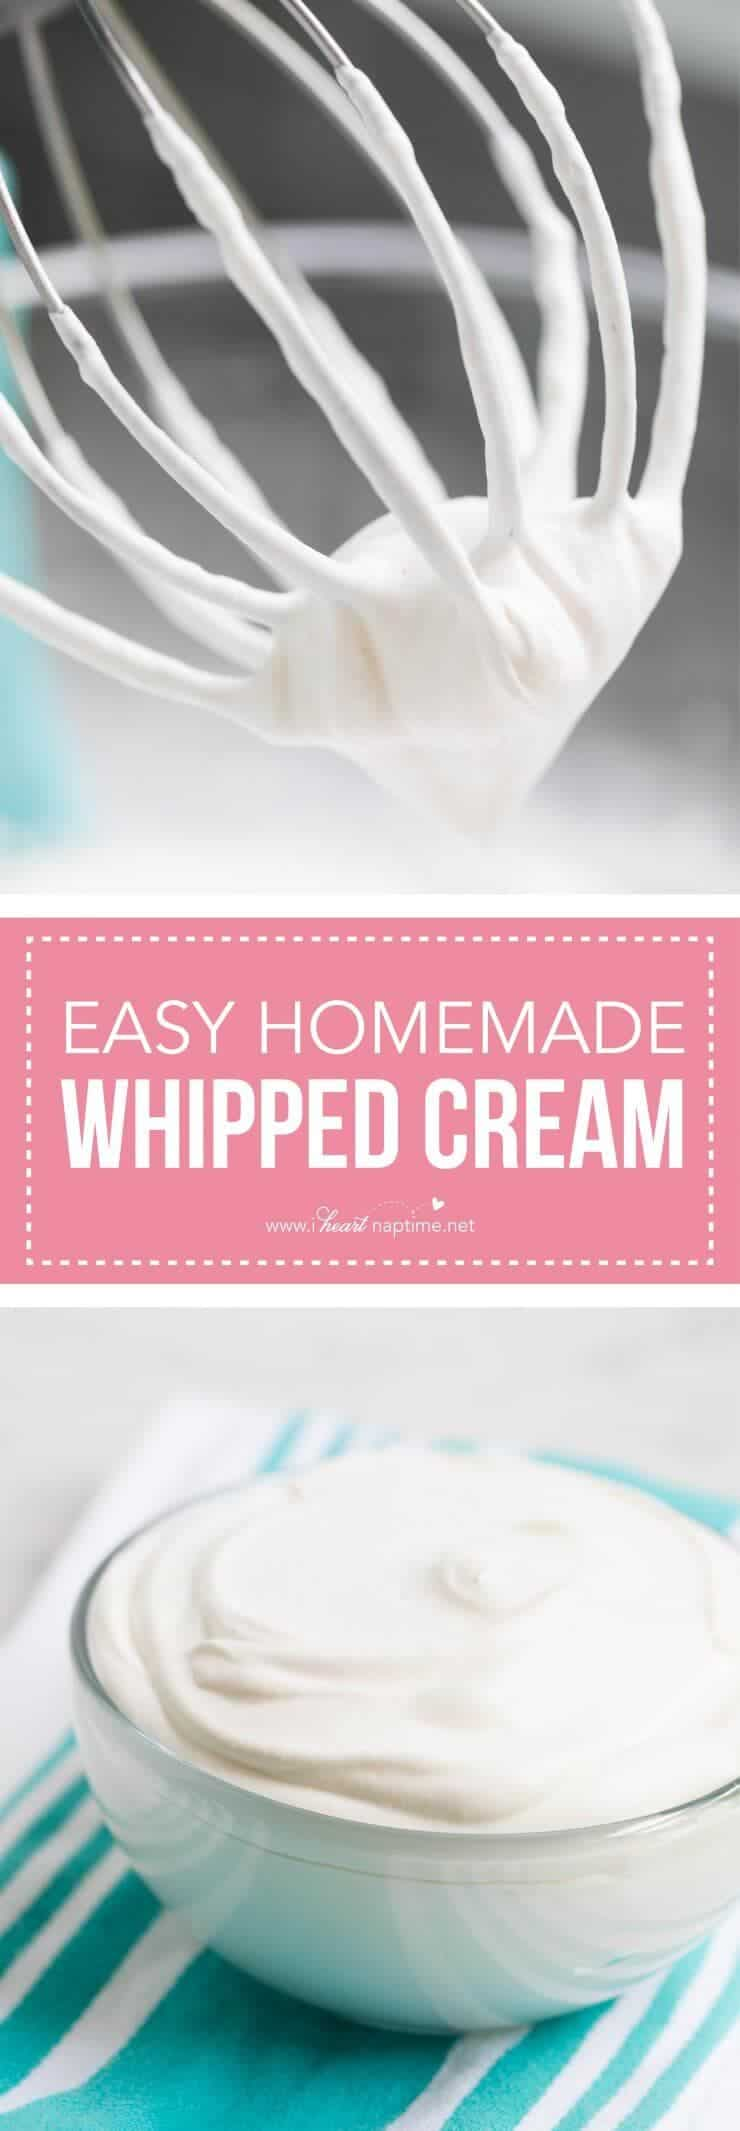 The BEST homemade whipped cream -made with only 3 ingredients in less than 5 minutes!